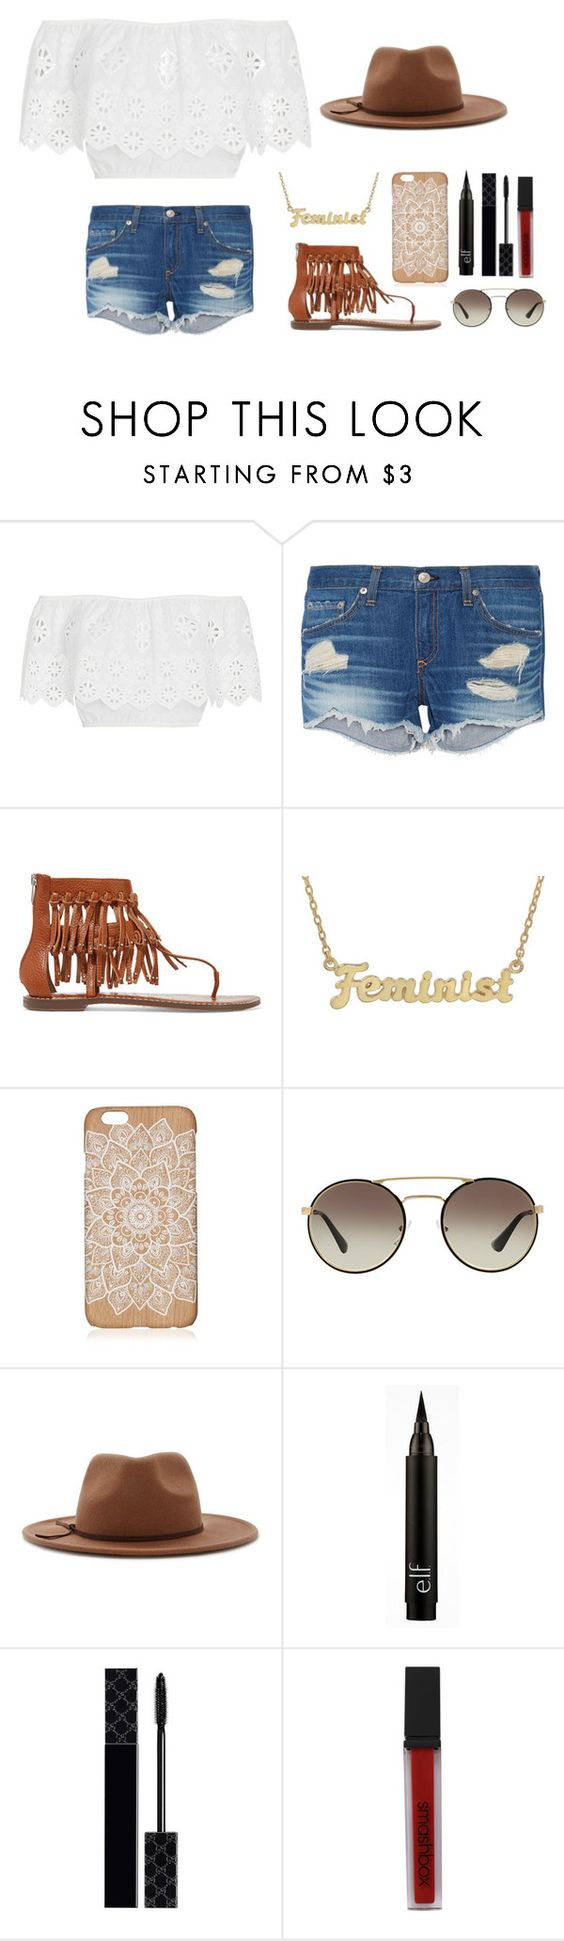 """""""Day out with the squad"""" by clairebear89 ❤ liked on Polyvore featuring Miguelina, rag & bone, Sam Edelman, me you, Prada, Forever 21, Gucci and Smashbox"""